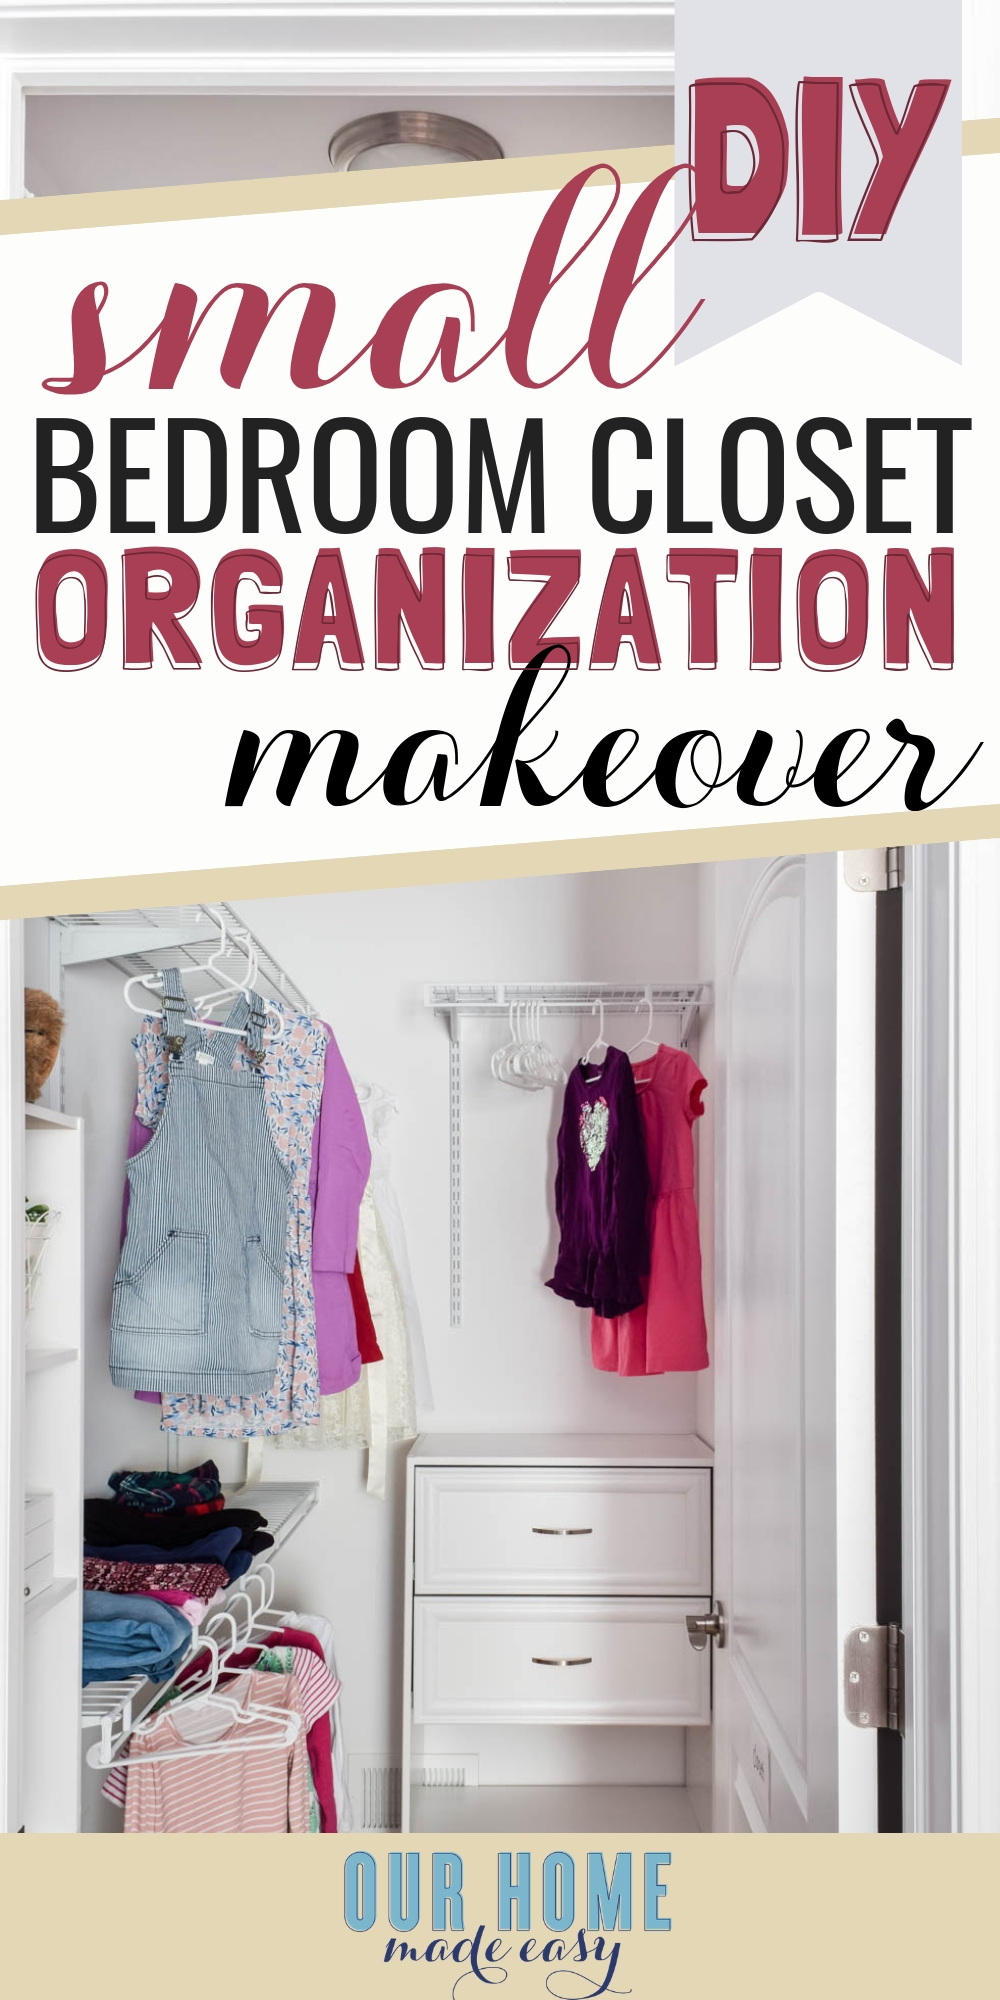 DIY Small Bedroom Closet Organization Reveal – Our Home Made Easy